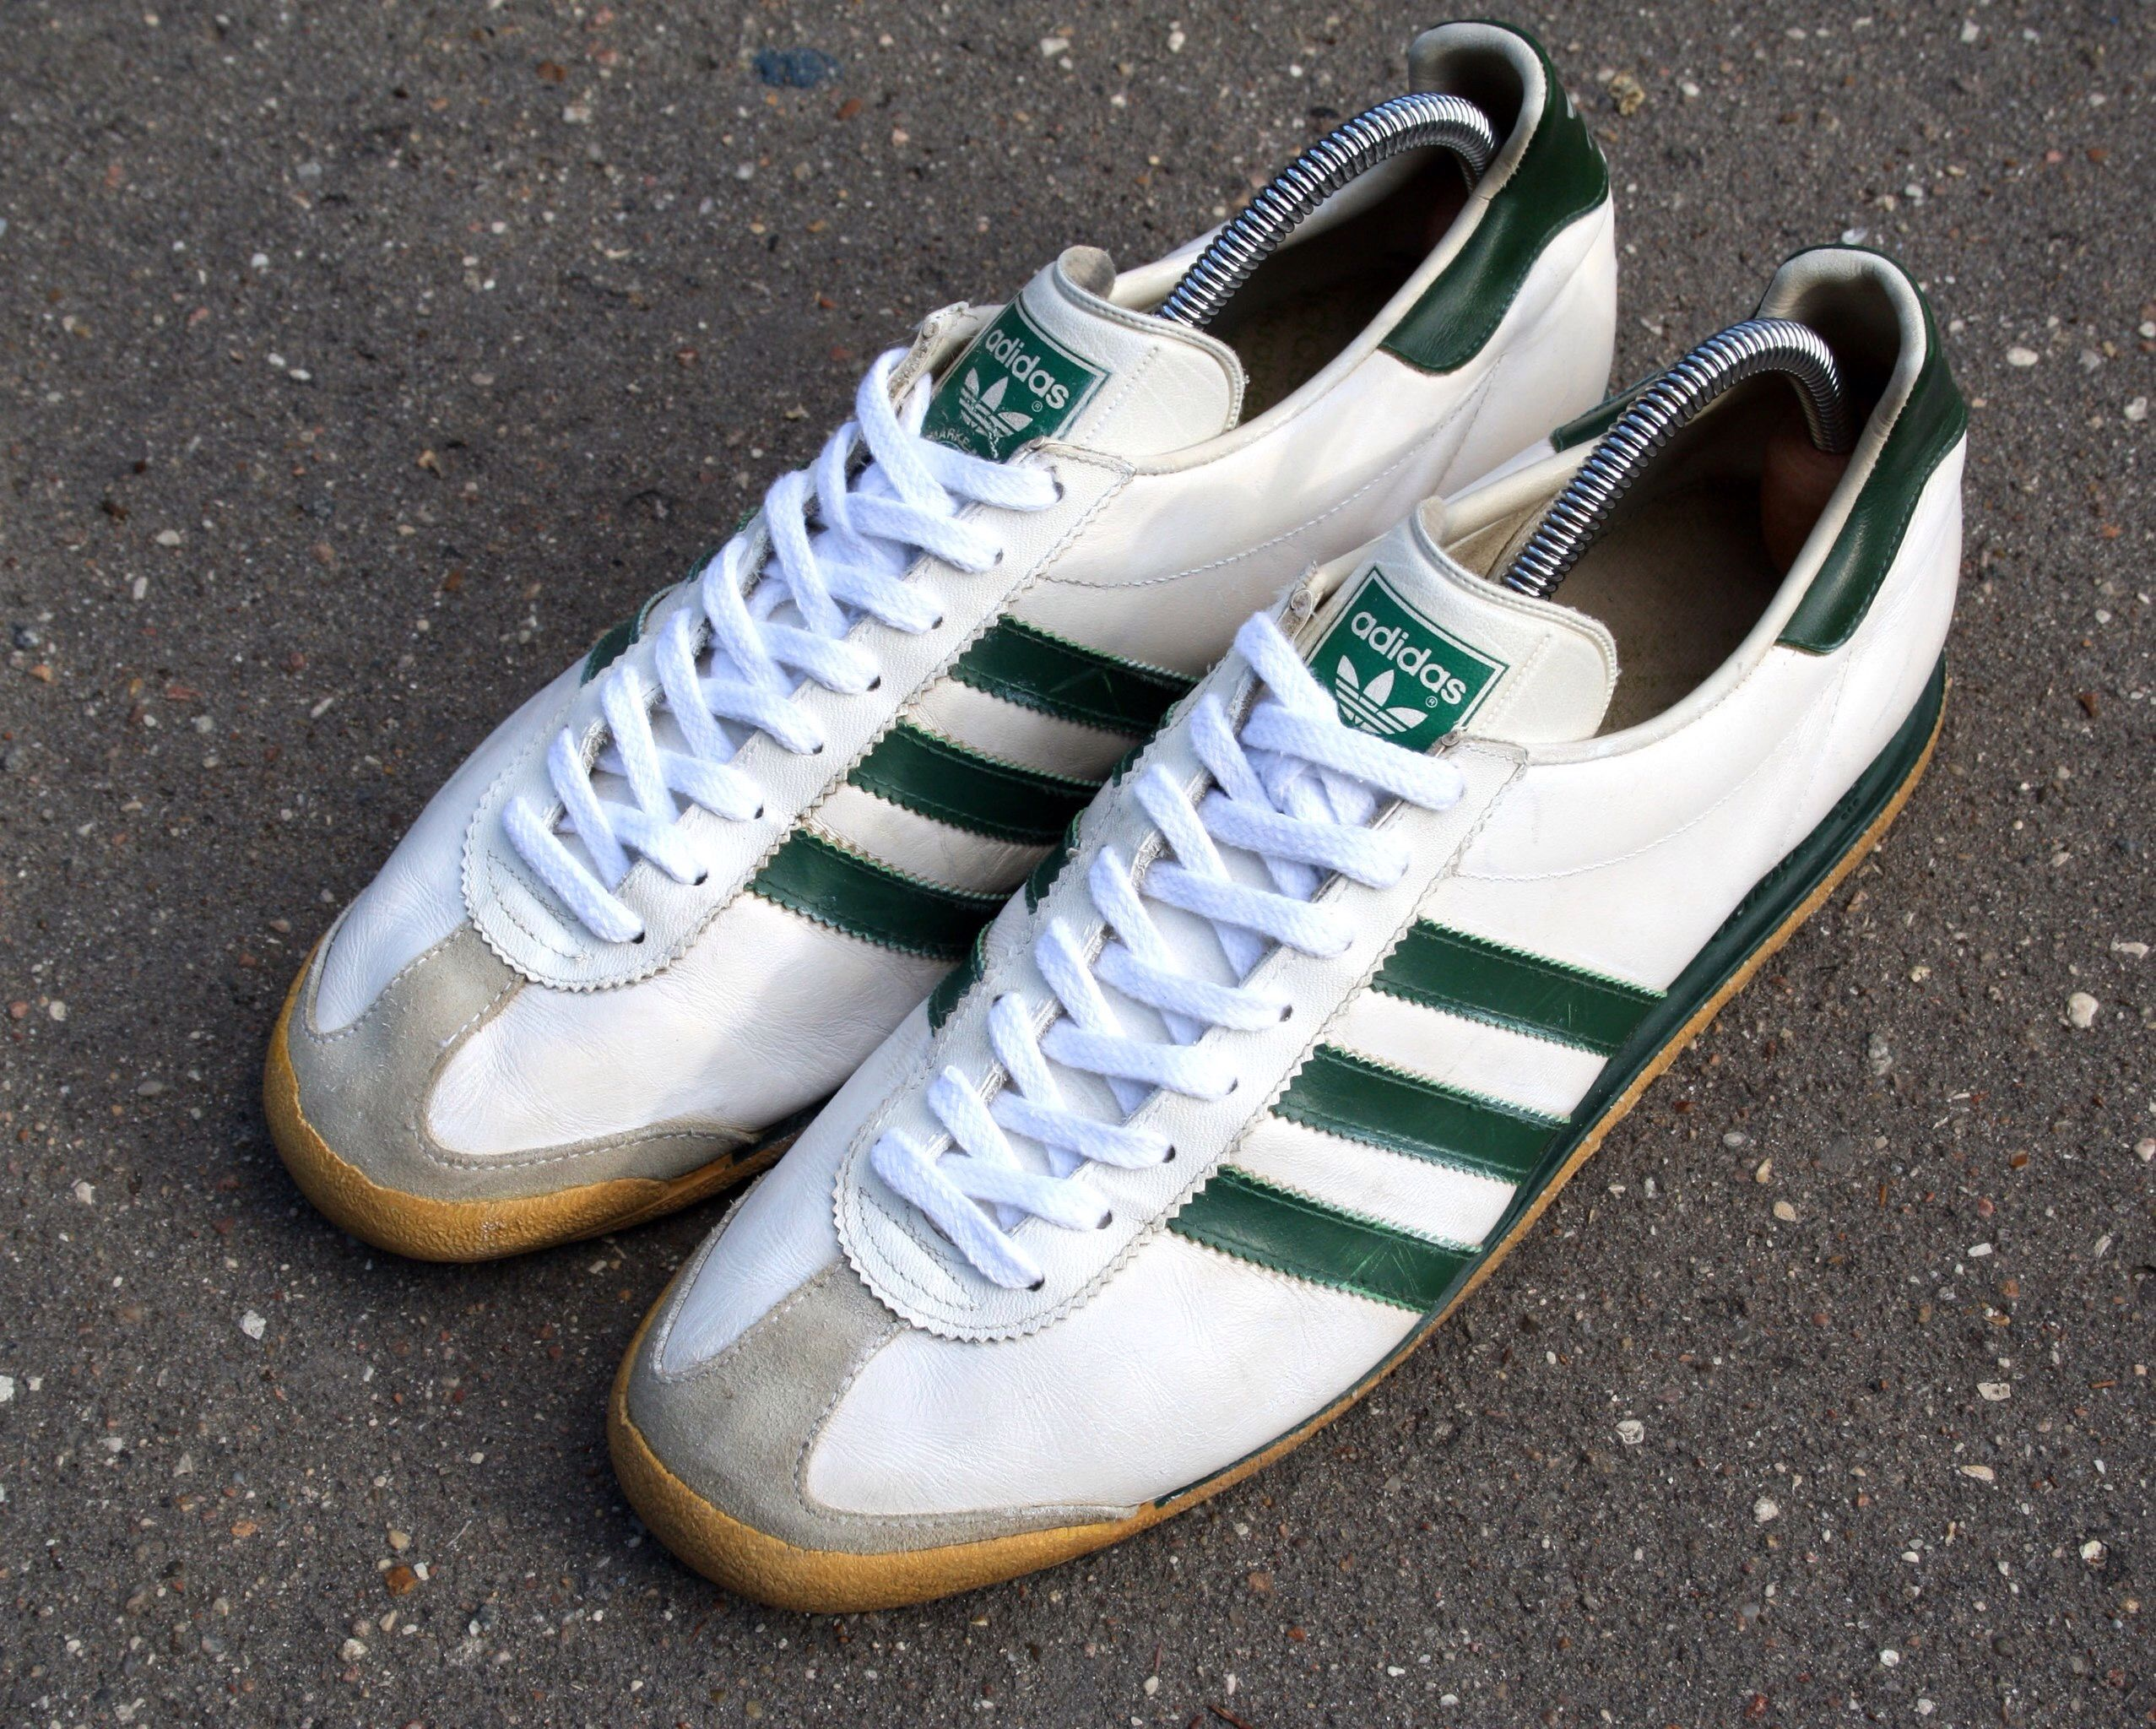 detailed look d8578 66310 Adidas Rom. Release 1980s. Made in West Germany. adiporn adidasvintage  adidasoriginals adidasrom